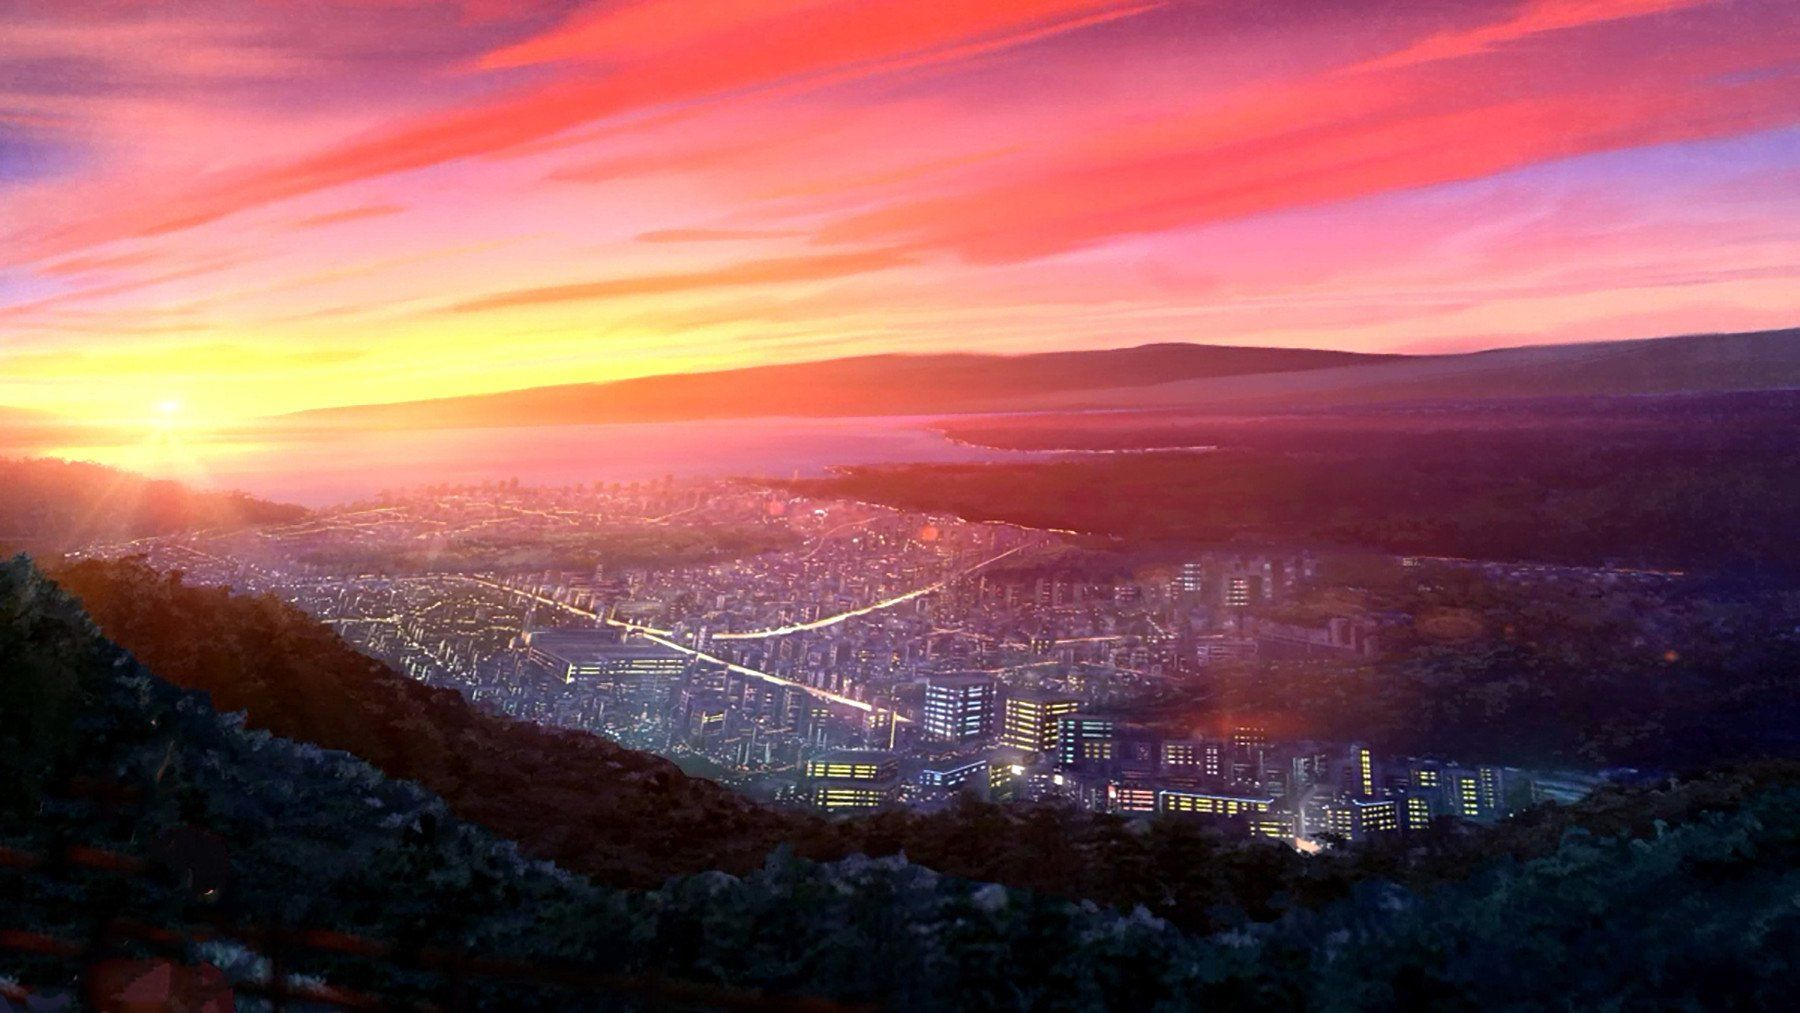 Anime Original Hill Mountain Sunset City Light Building